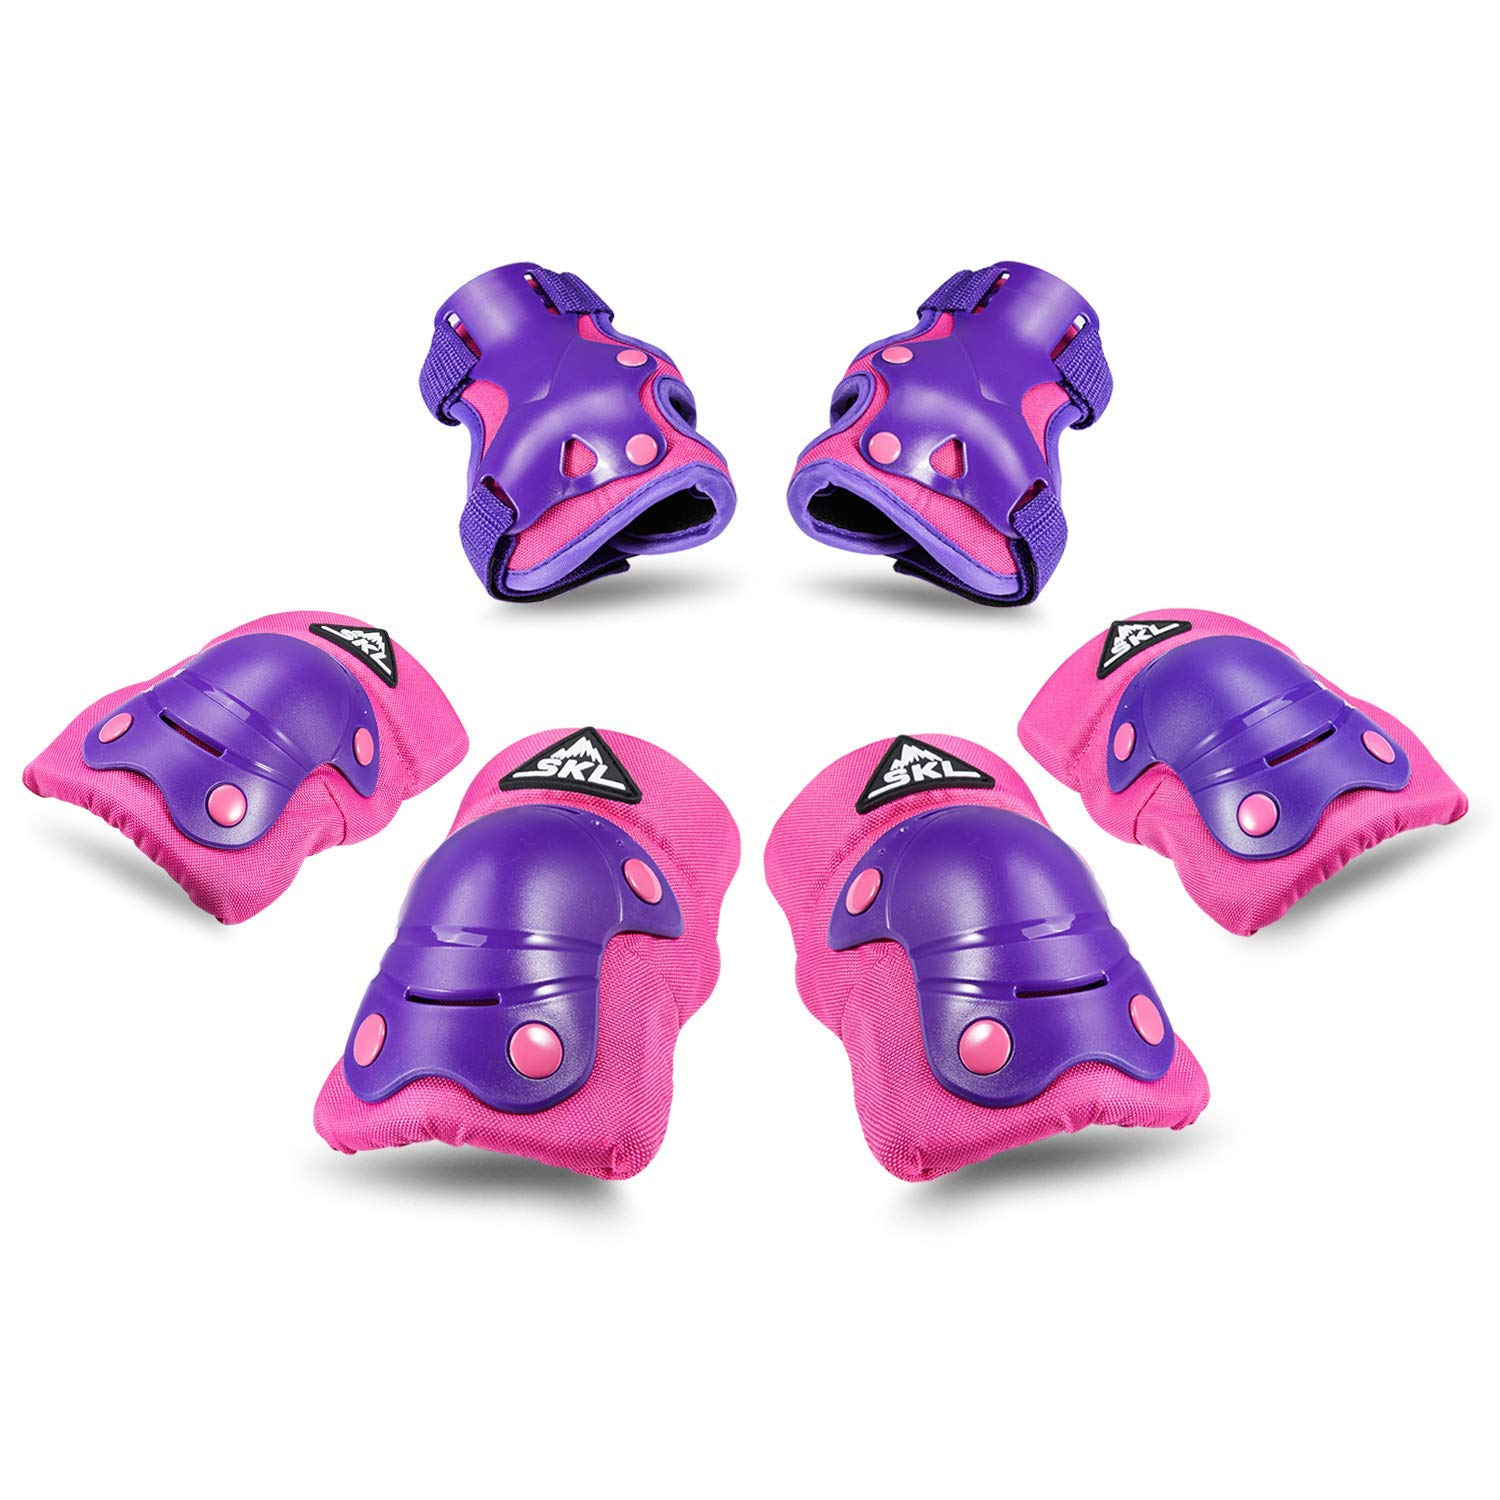 Kids Knee Pads Elbow Pads Guards Protective Gear Set for Skates Skateboard Rollerblade Roller Cycling Bike Inline Scooter Riding, Toddler Wrist Guards for Sports Purple by S.K.L